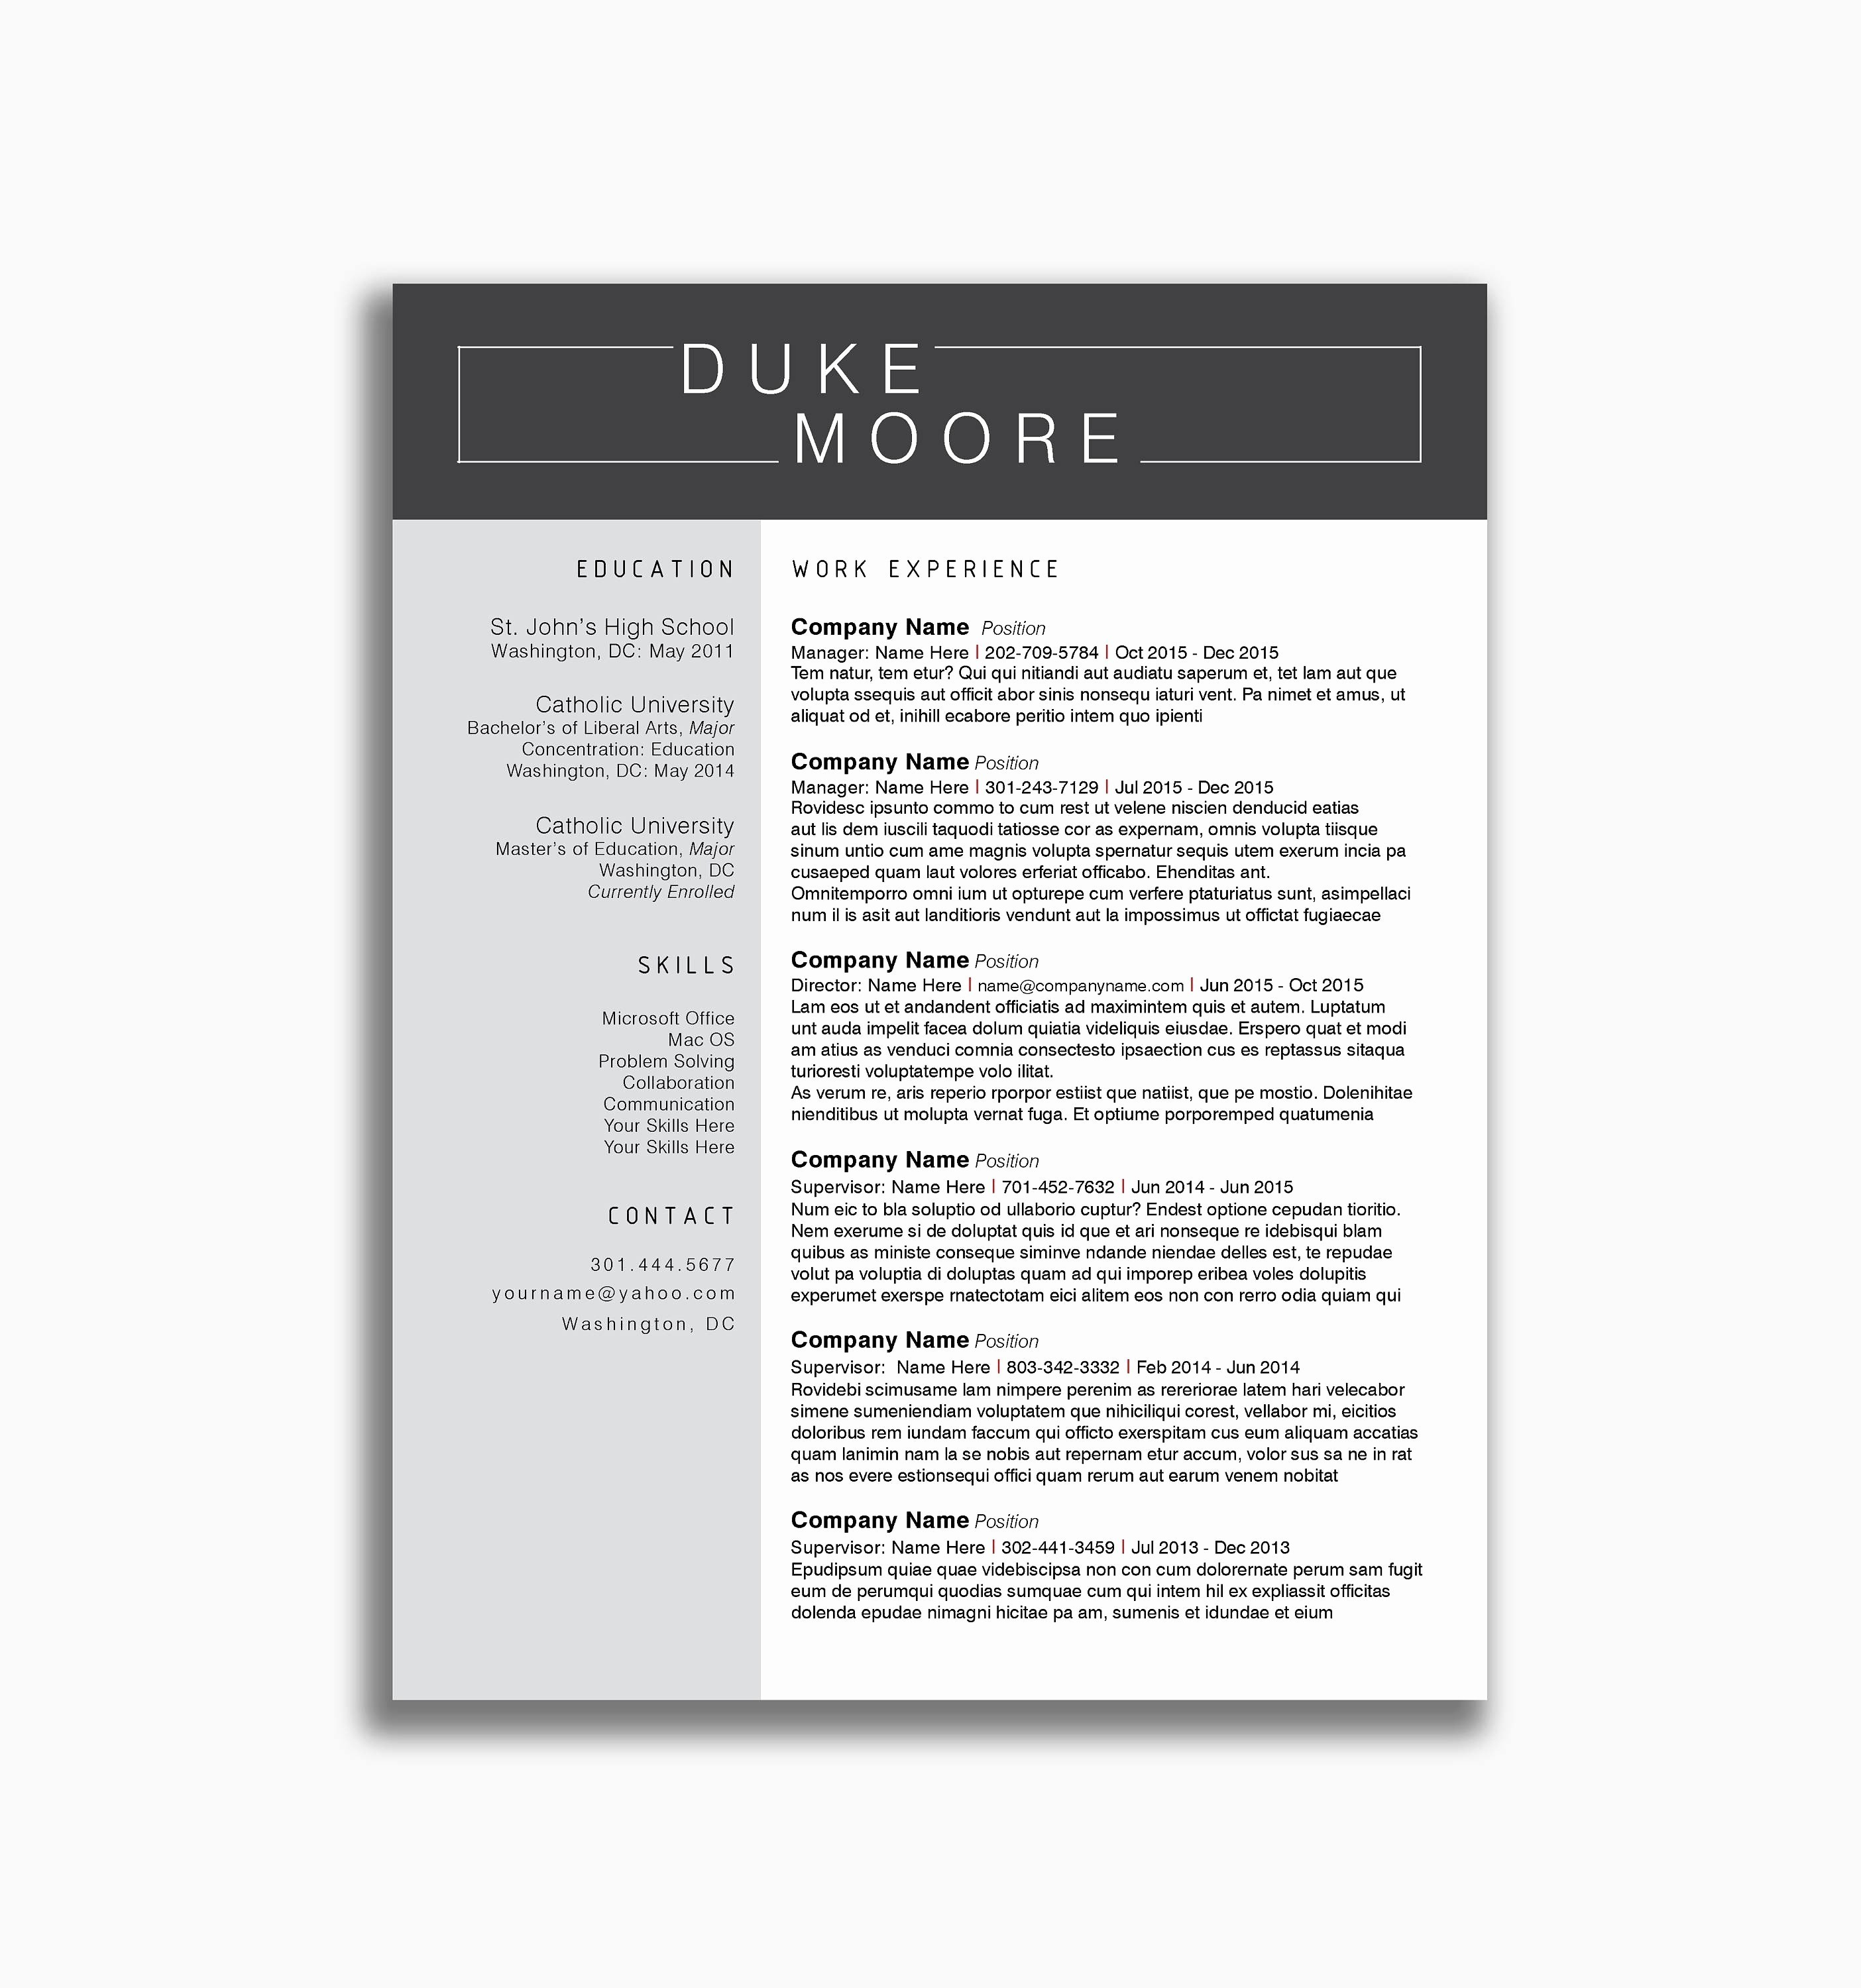 Supervisor Resume Examples - Supervisor Resume Examples Inspirationa Department Supervisor Resume